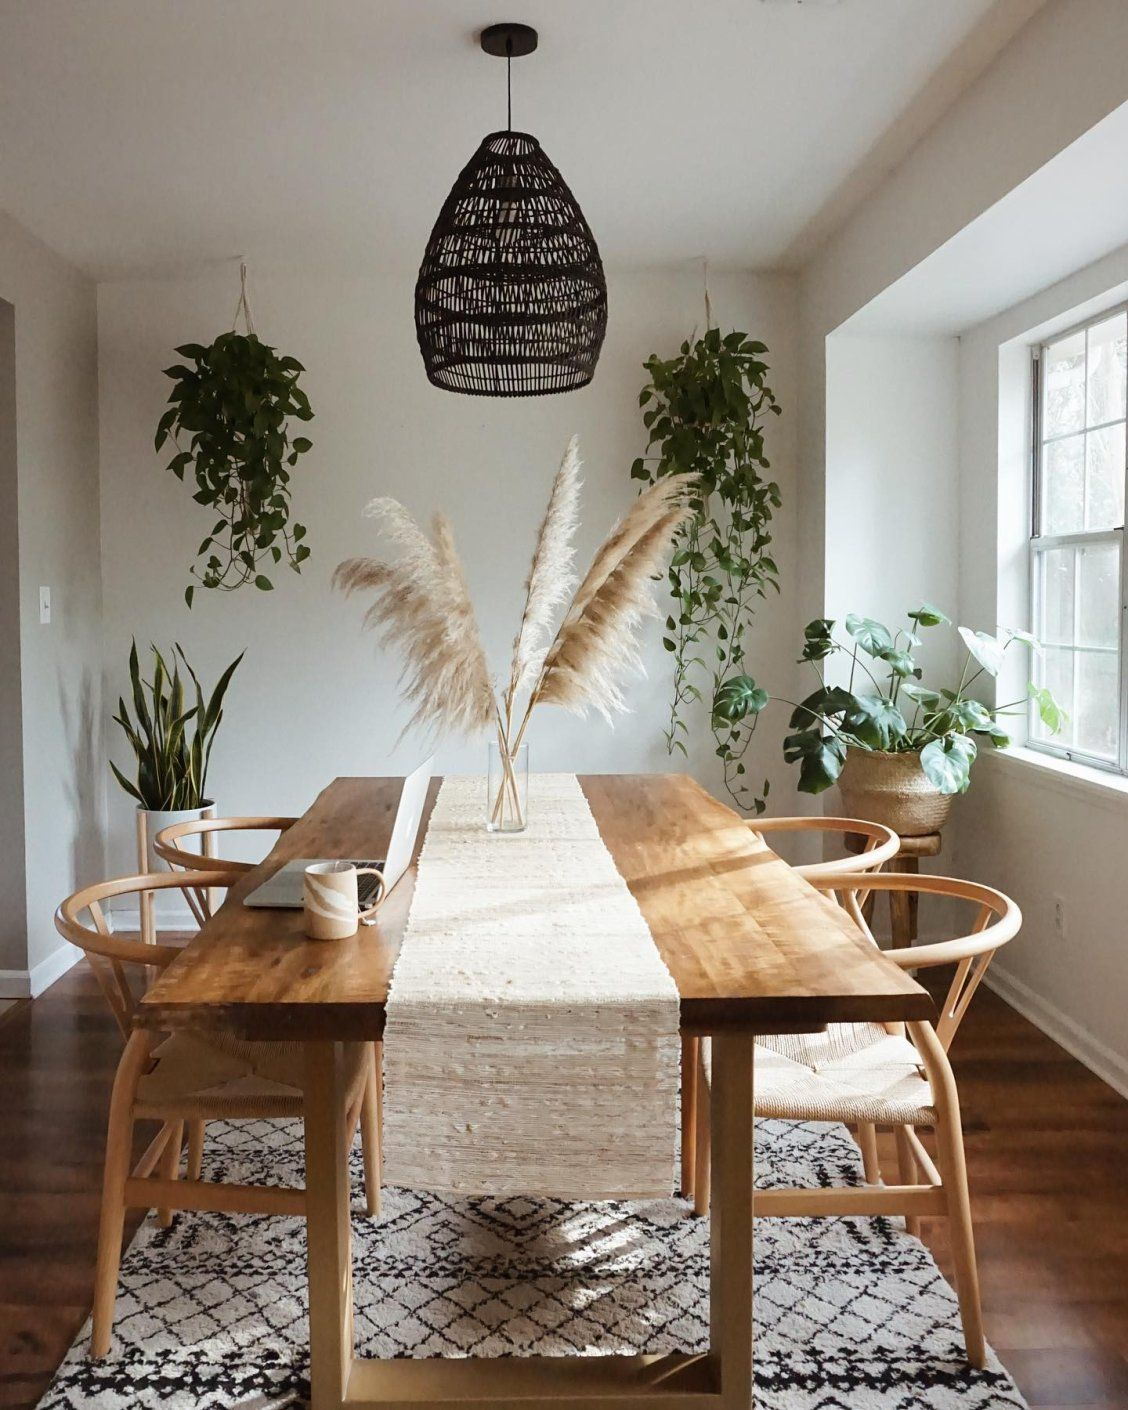 Live Edge Slaon Dining Table feat. Wild pampas grass via @theboholoft.